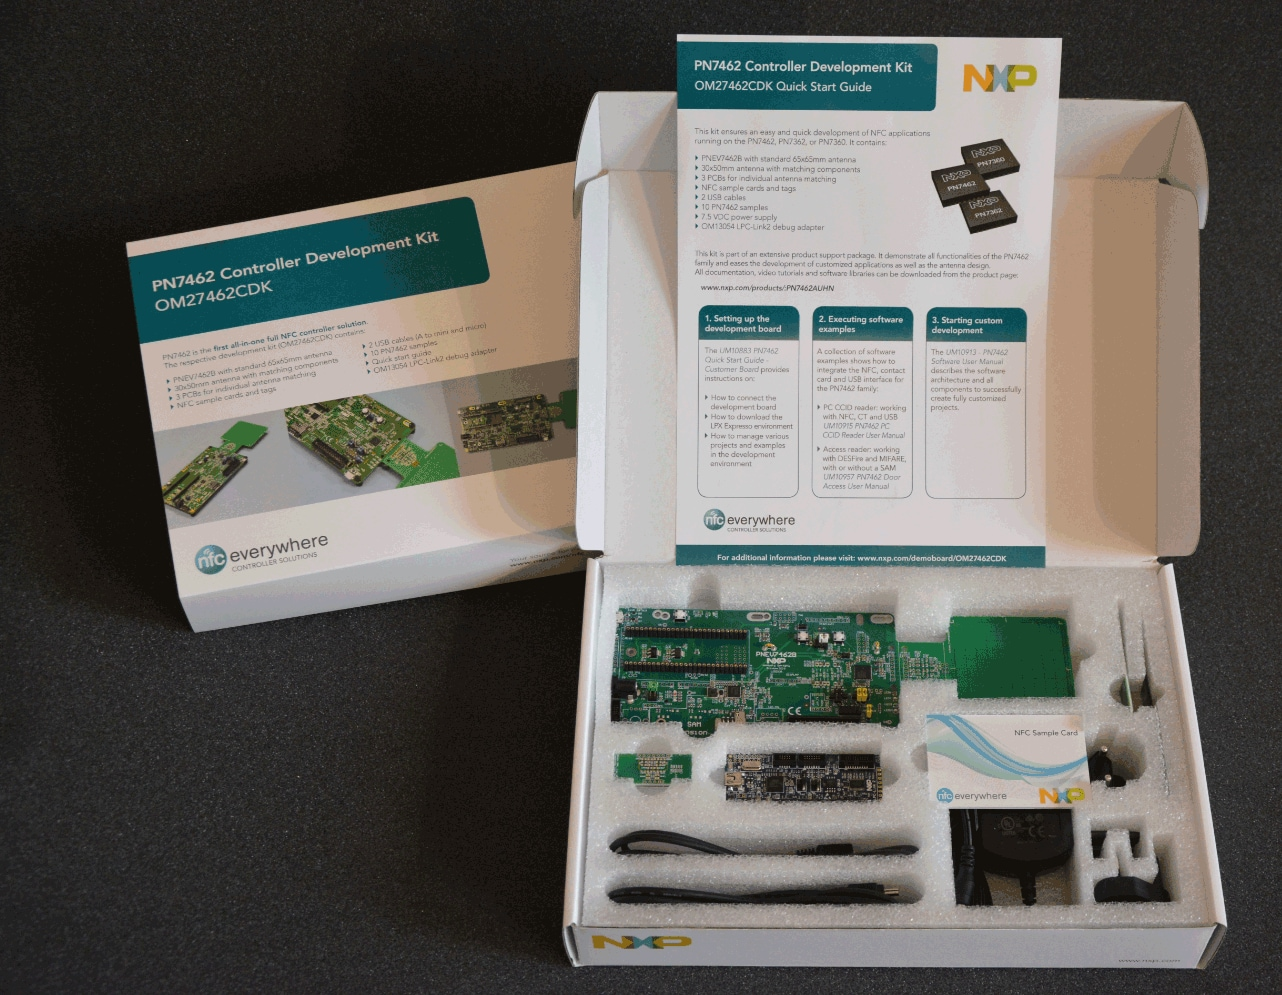 OM27462CDK: NFC development kit